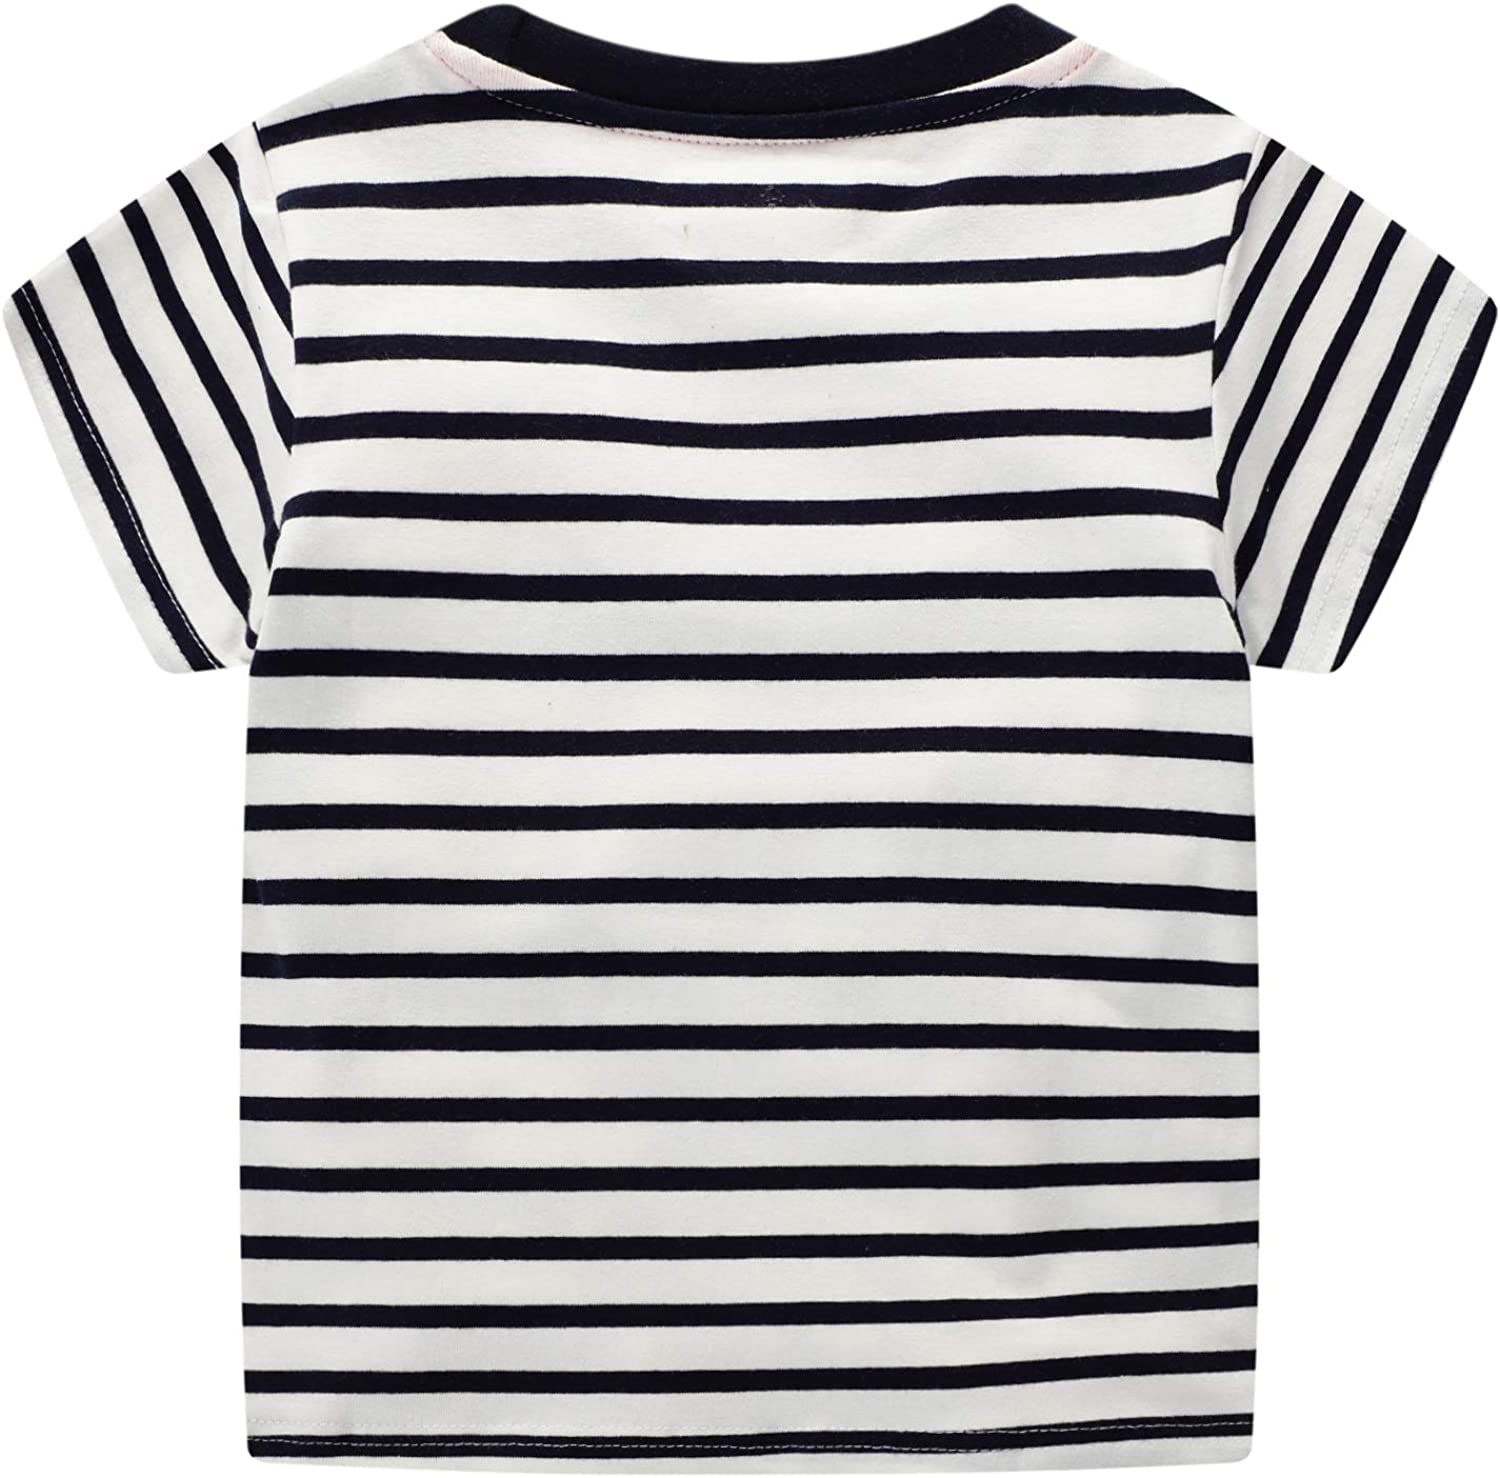 Short Sleeve T-Shirts and Shorts for Little Boys Cotton Cartoon Stripe Print Animal Pattern 1-8 Years Old